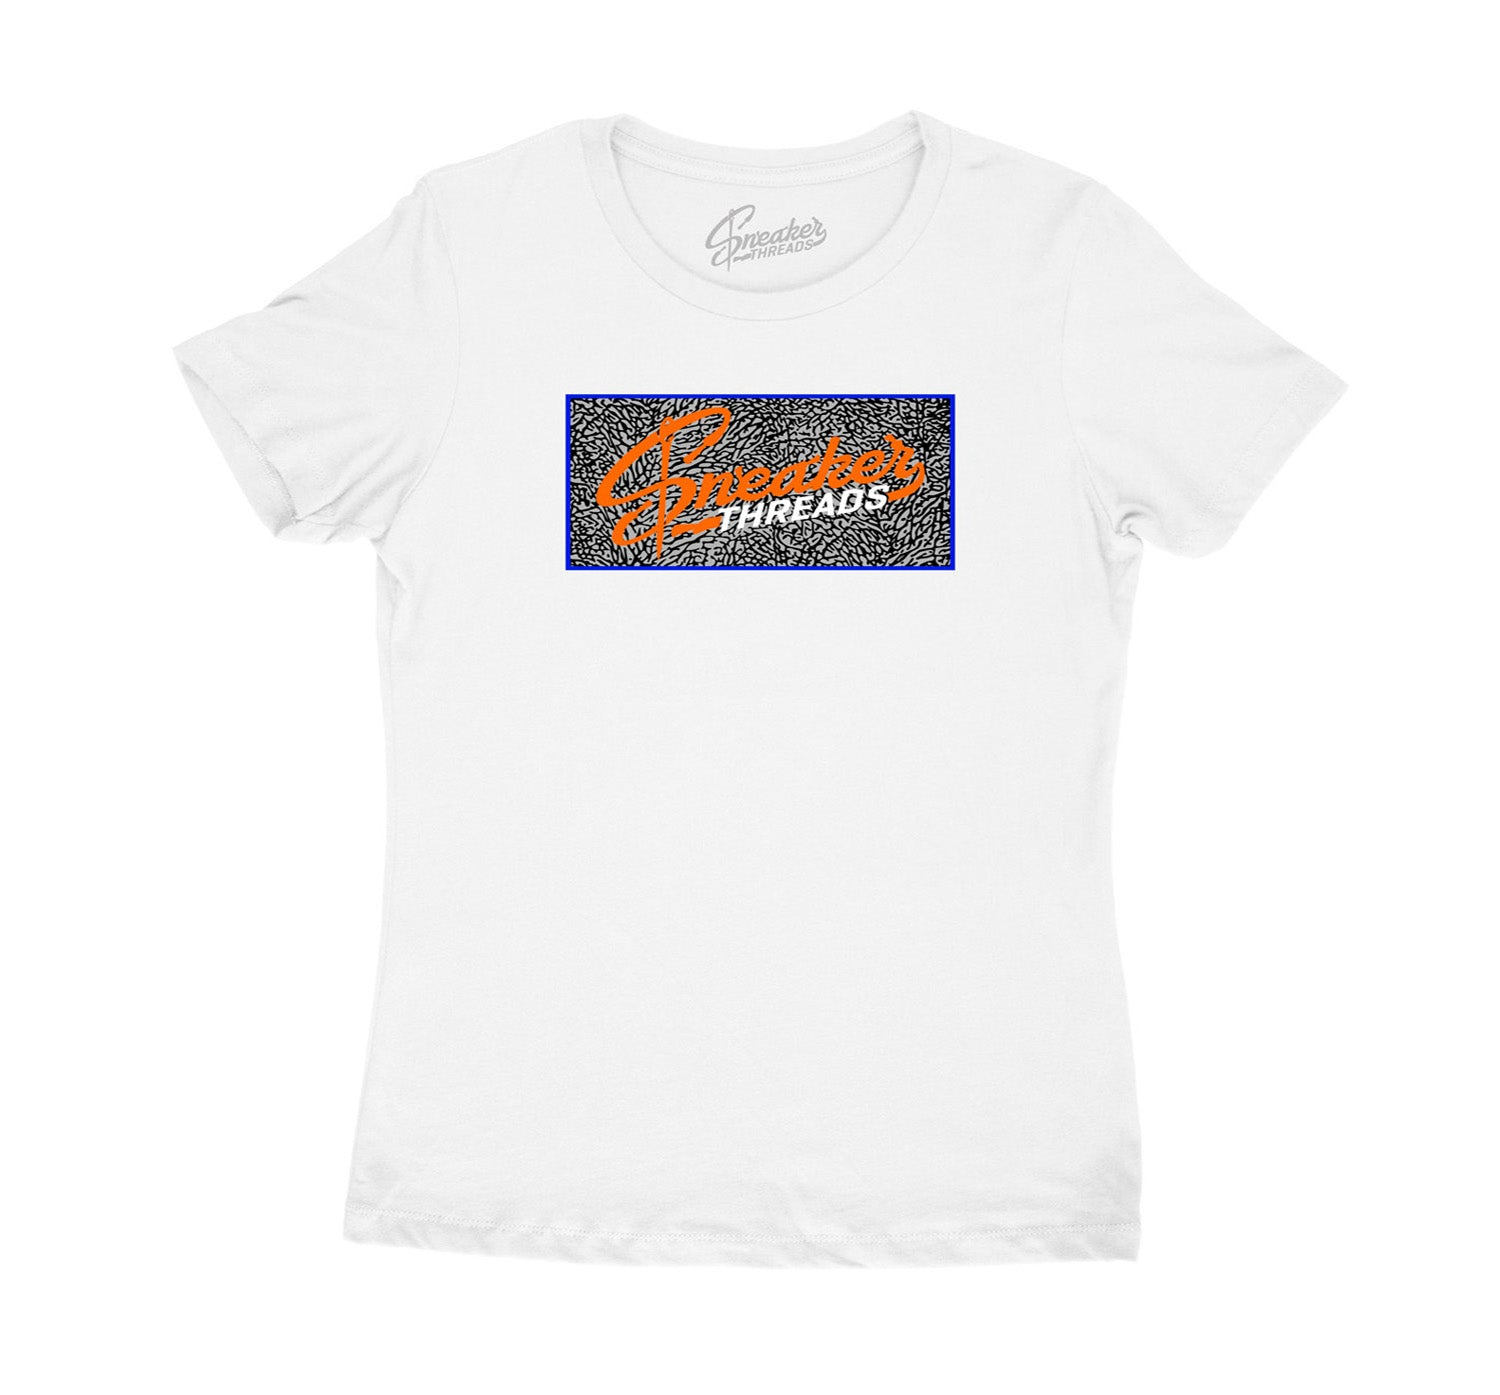 Jordan 3 womens knicks sneaker collection has matching womens shirts created to match perfectly